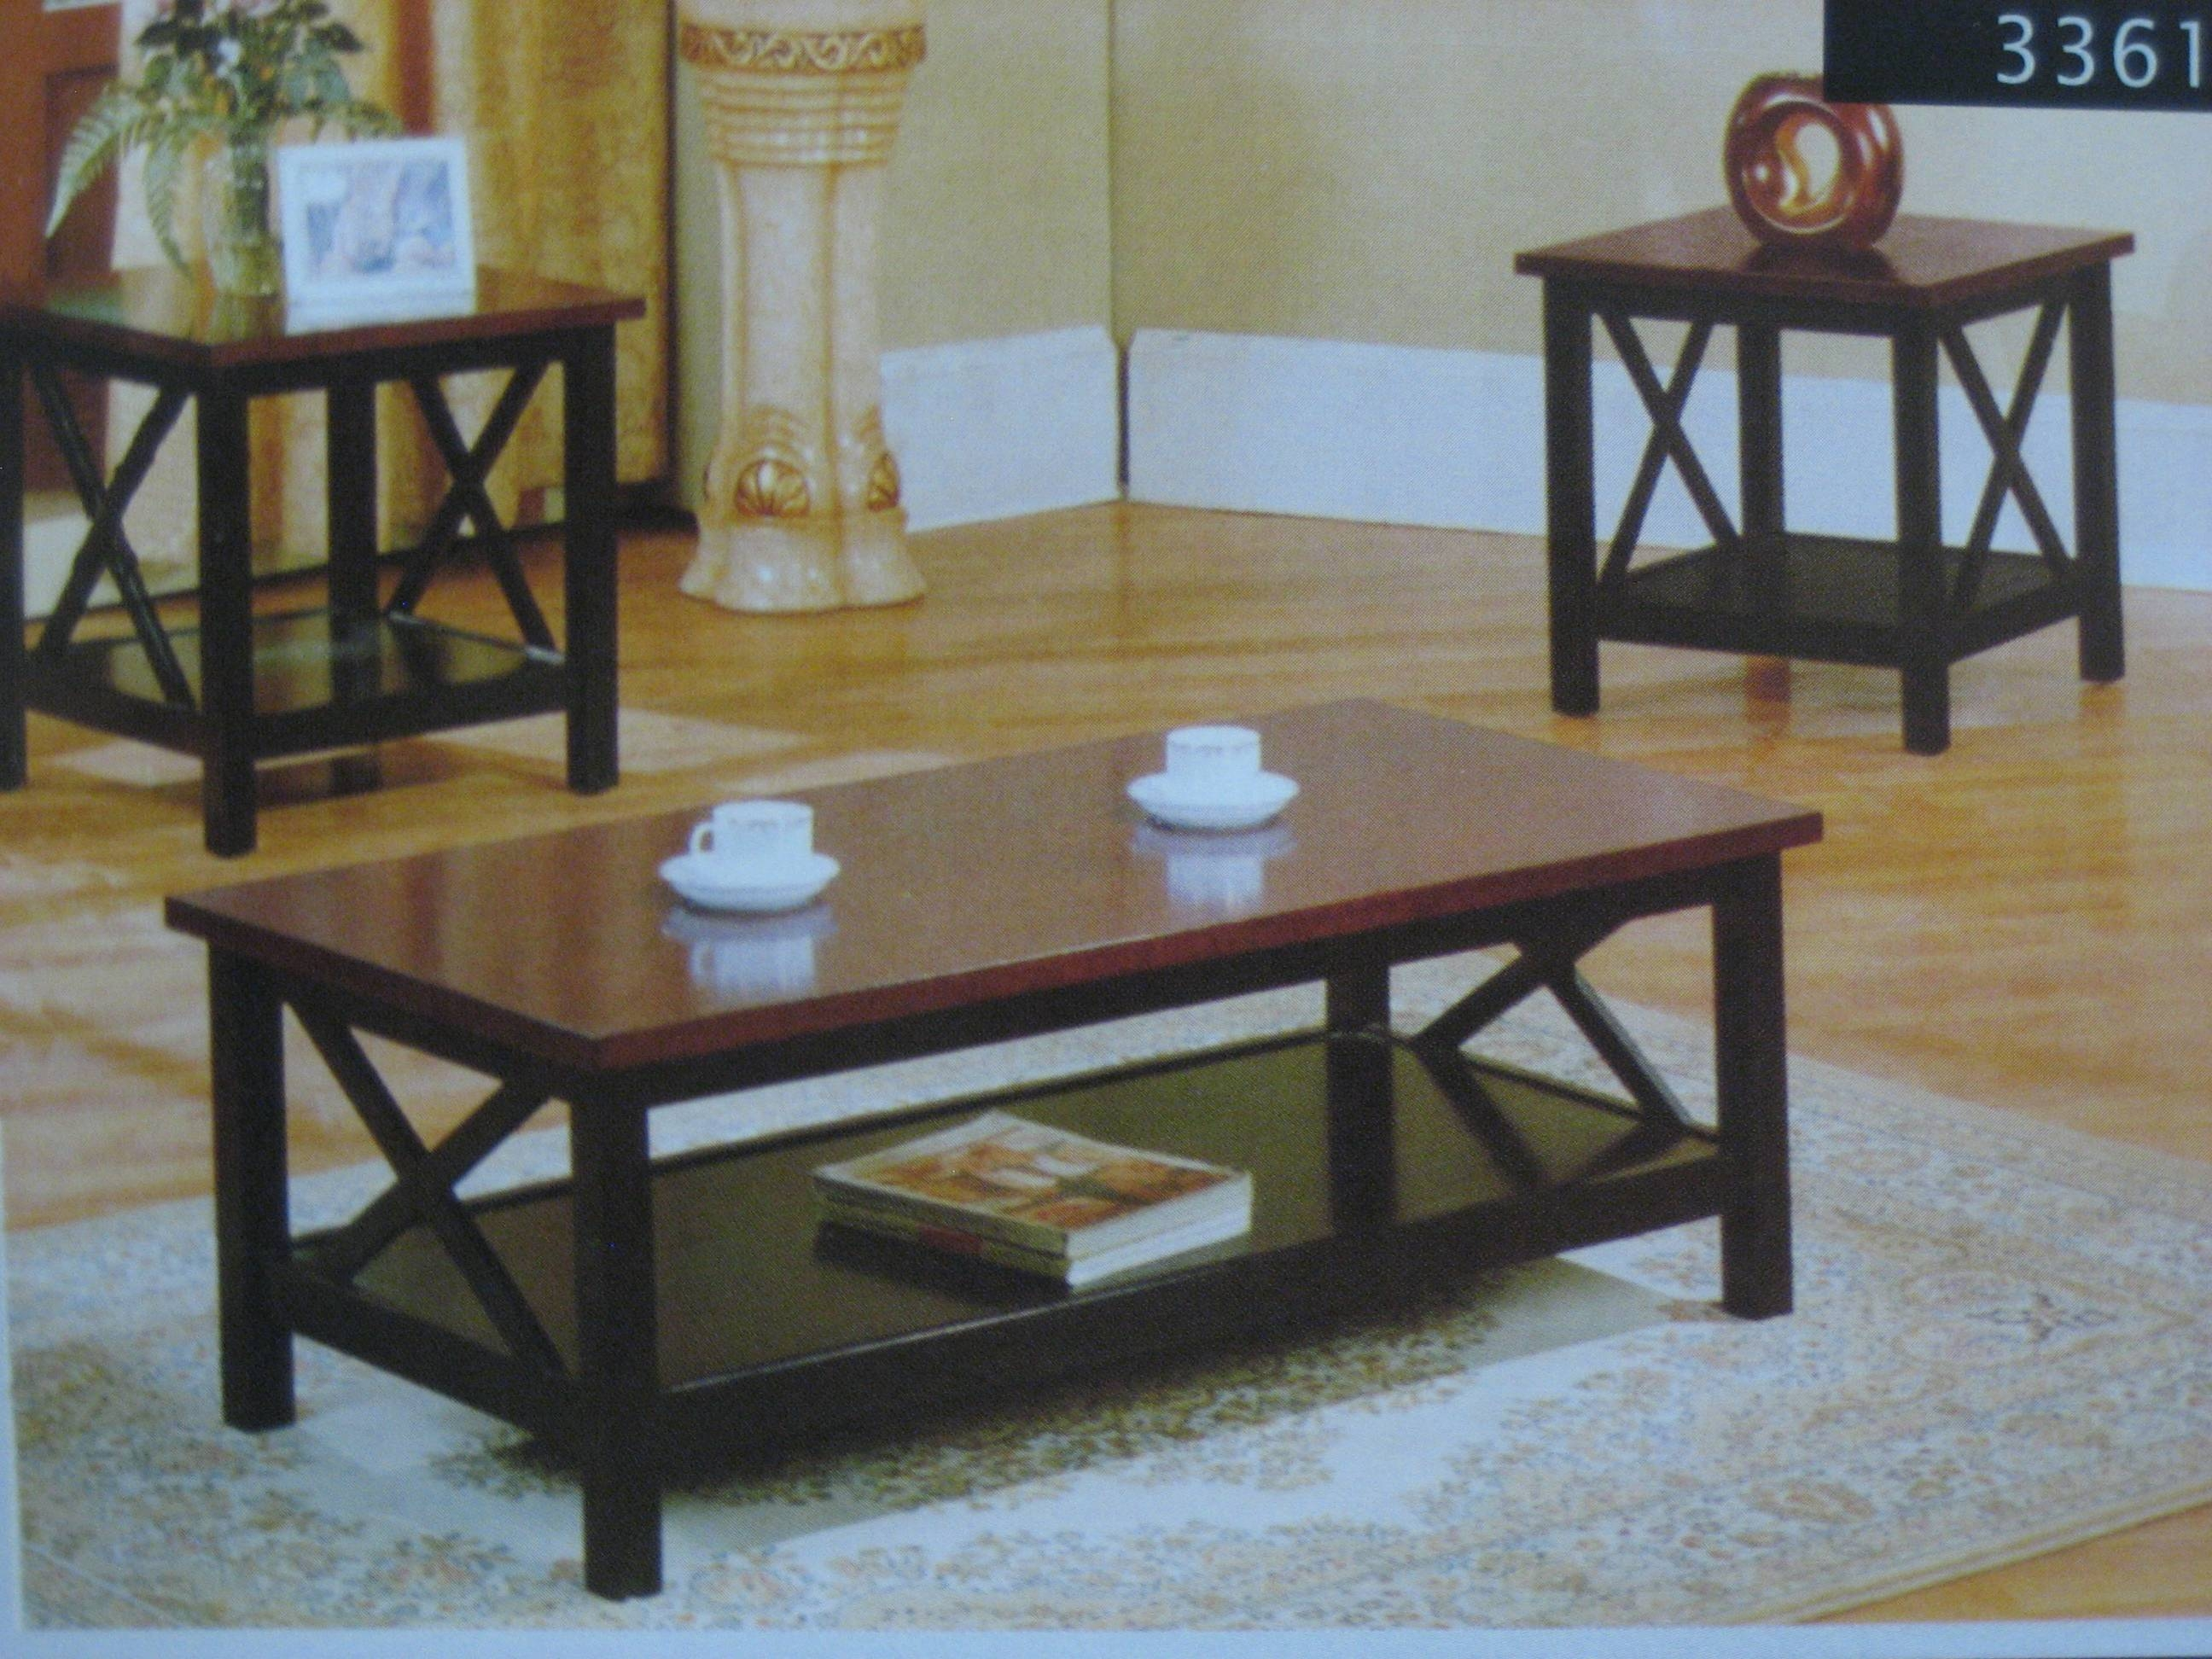 Square Coffee Table And End Table Sets | Coffee Tables Decoration regarding Coffee Table With Matching End Tables (Image 27 of 30)